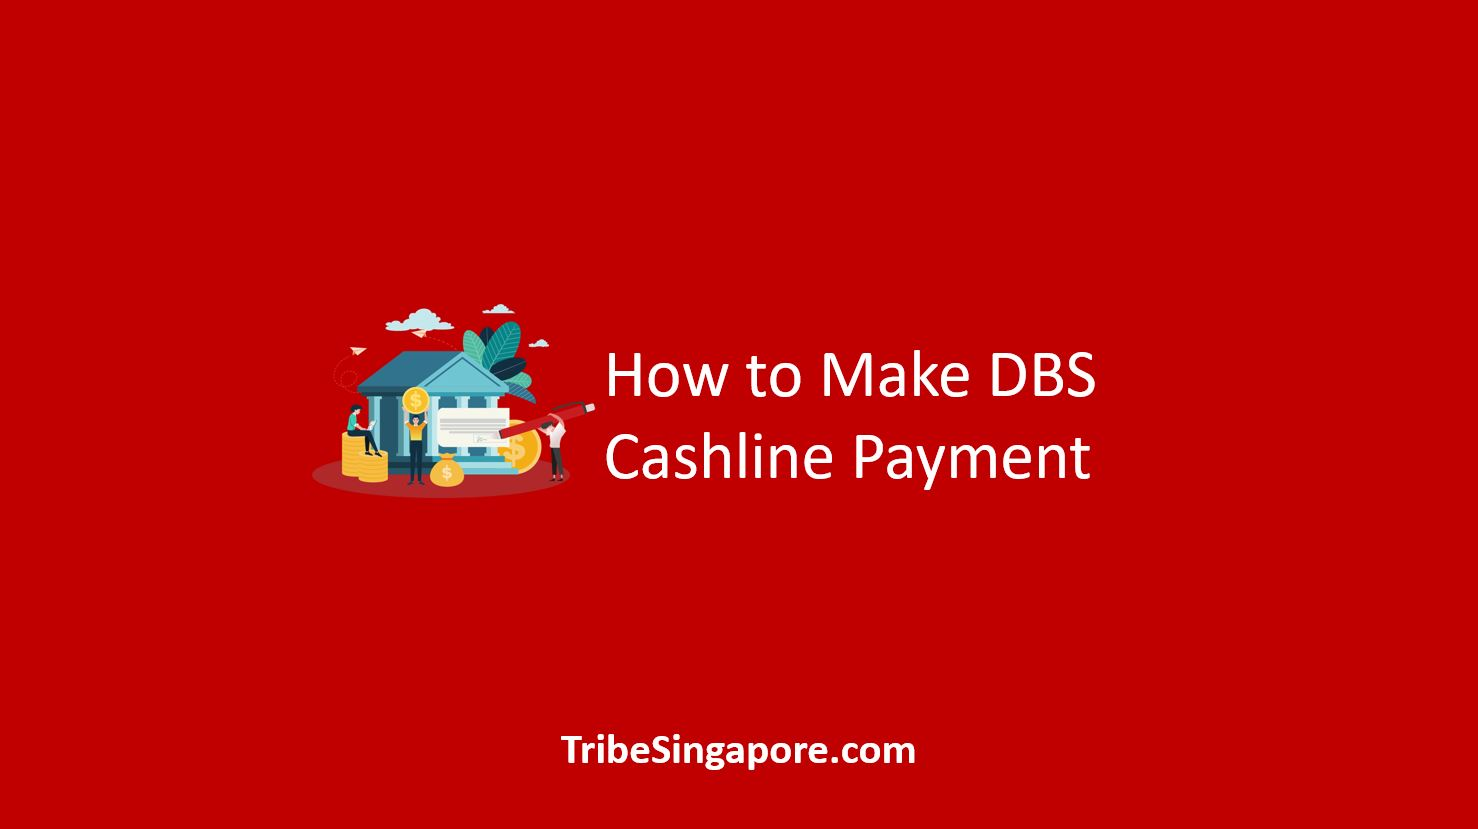 How to Make DBS Cashline Payment